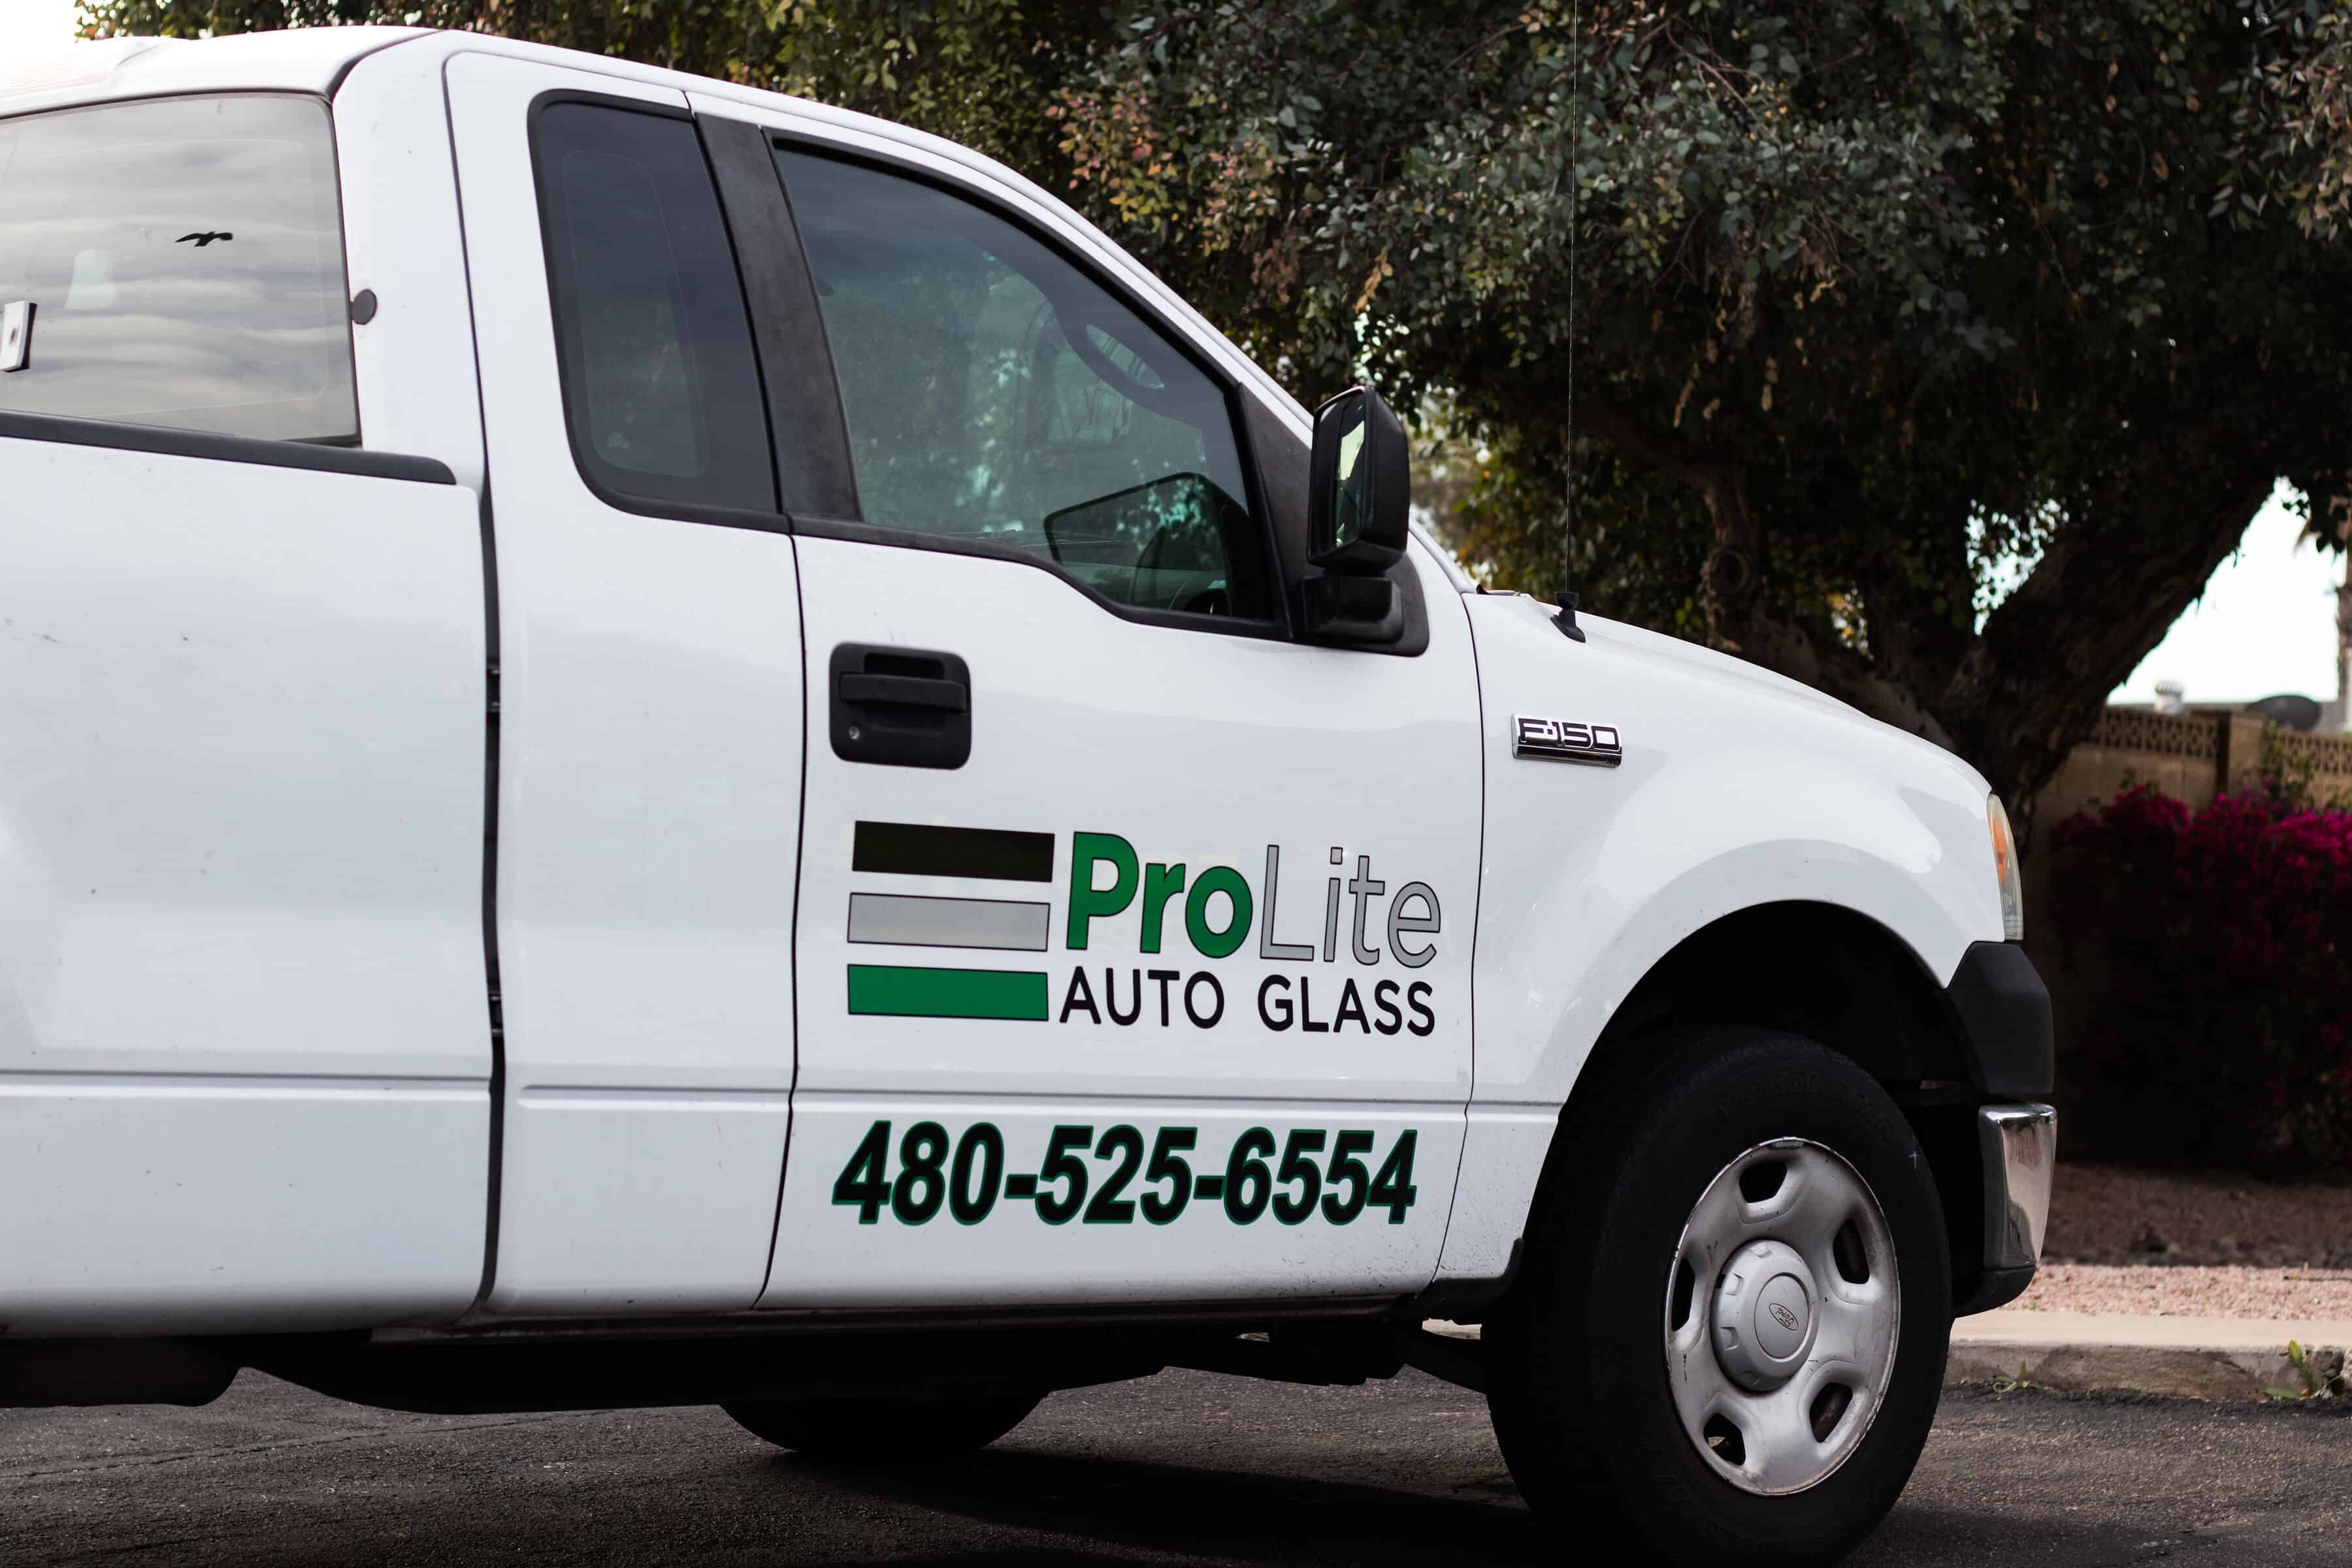 prolite reviews phoenix metro area